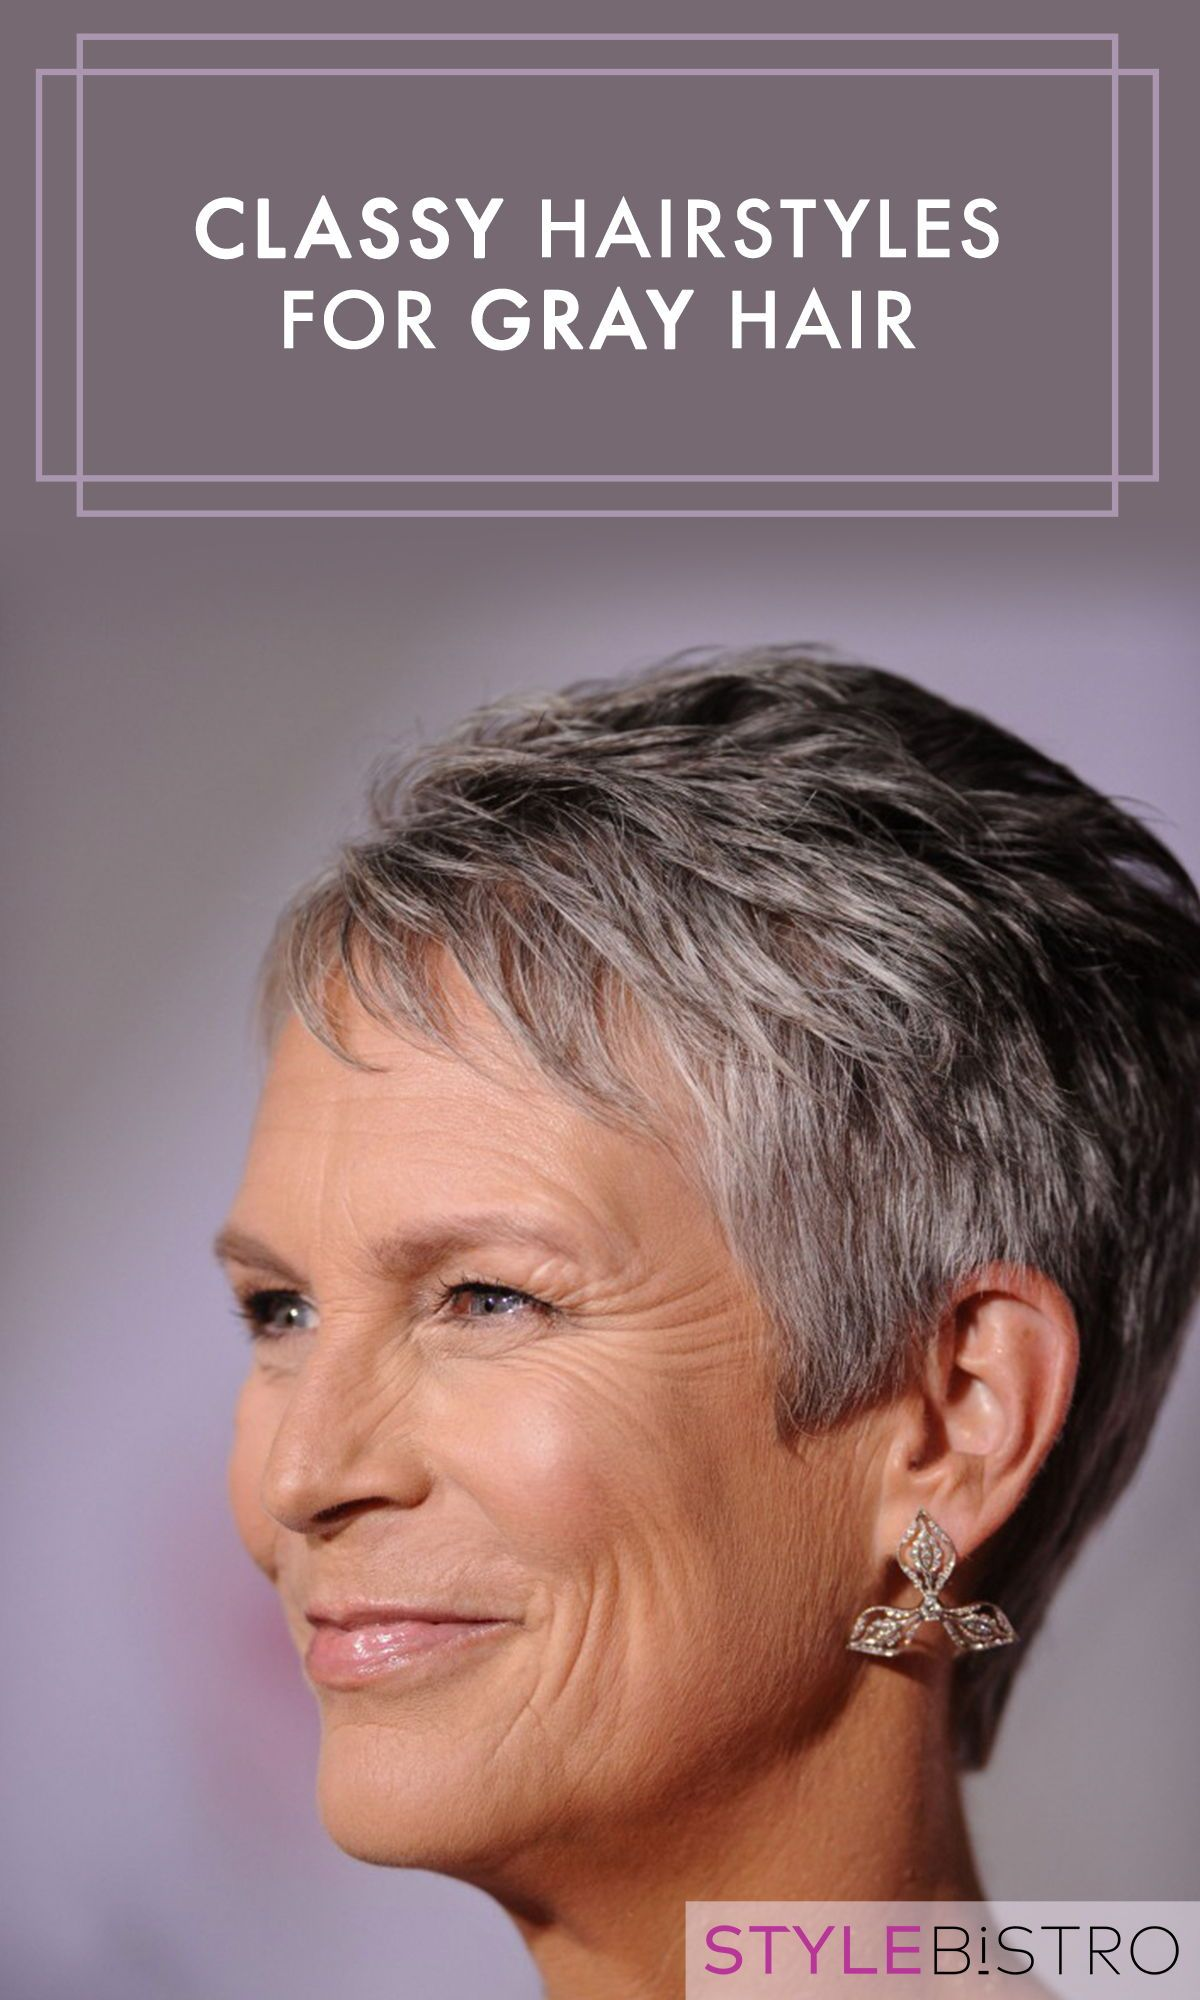 Classy Hairstyles For Gray Hair Classy Hairstyles Short Hair Styles Hair Styles